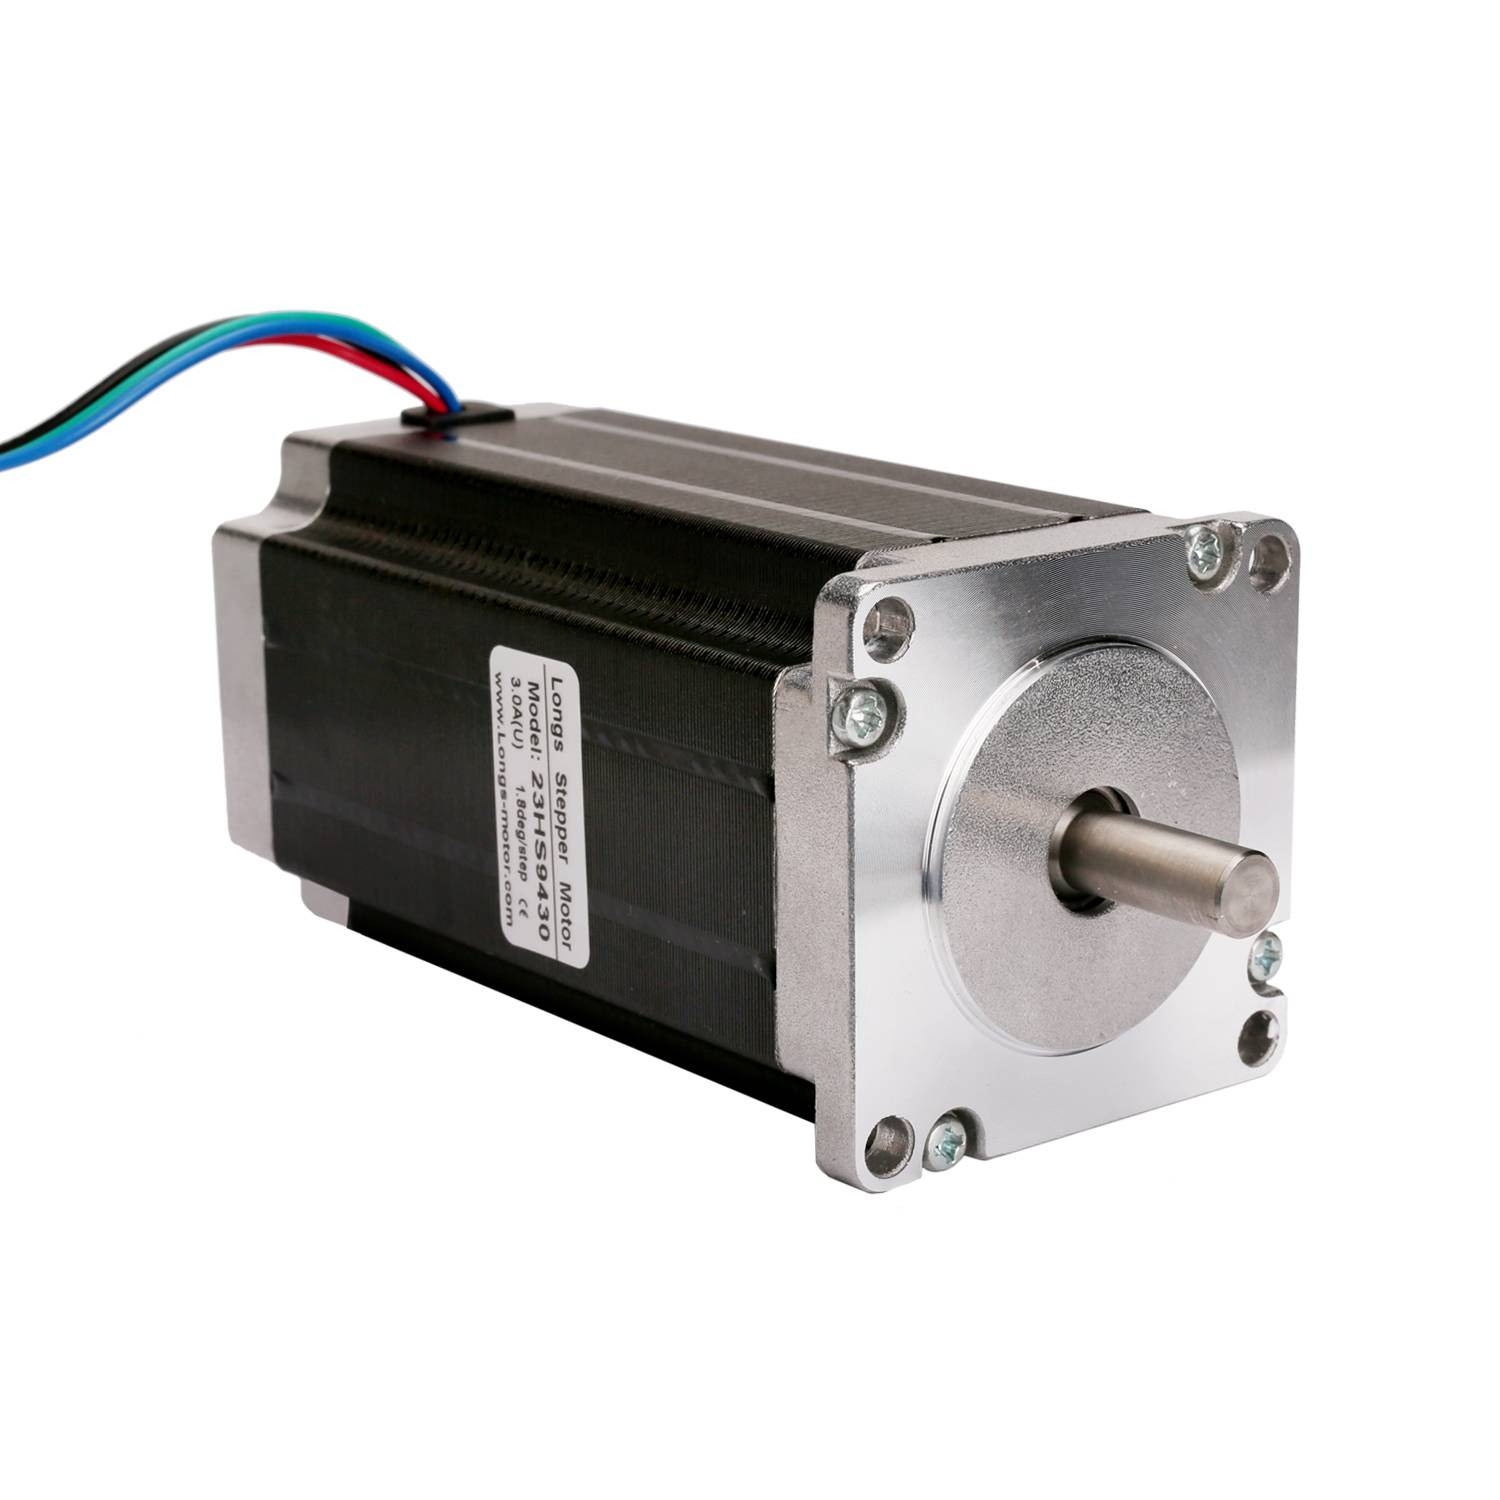 Hybrid Stepper Motor-Nema24 Featured Image